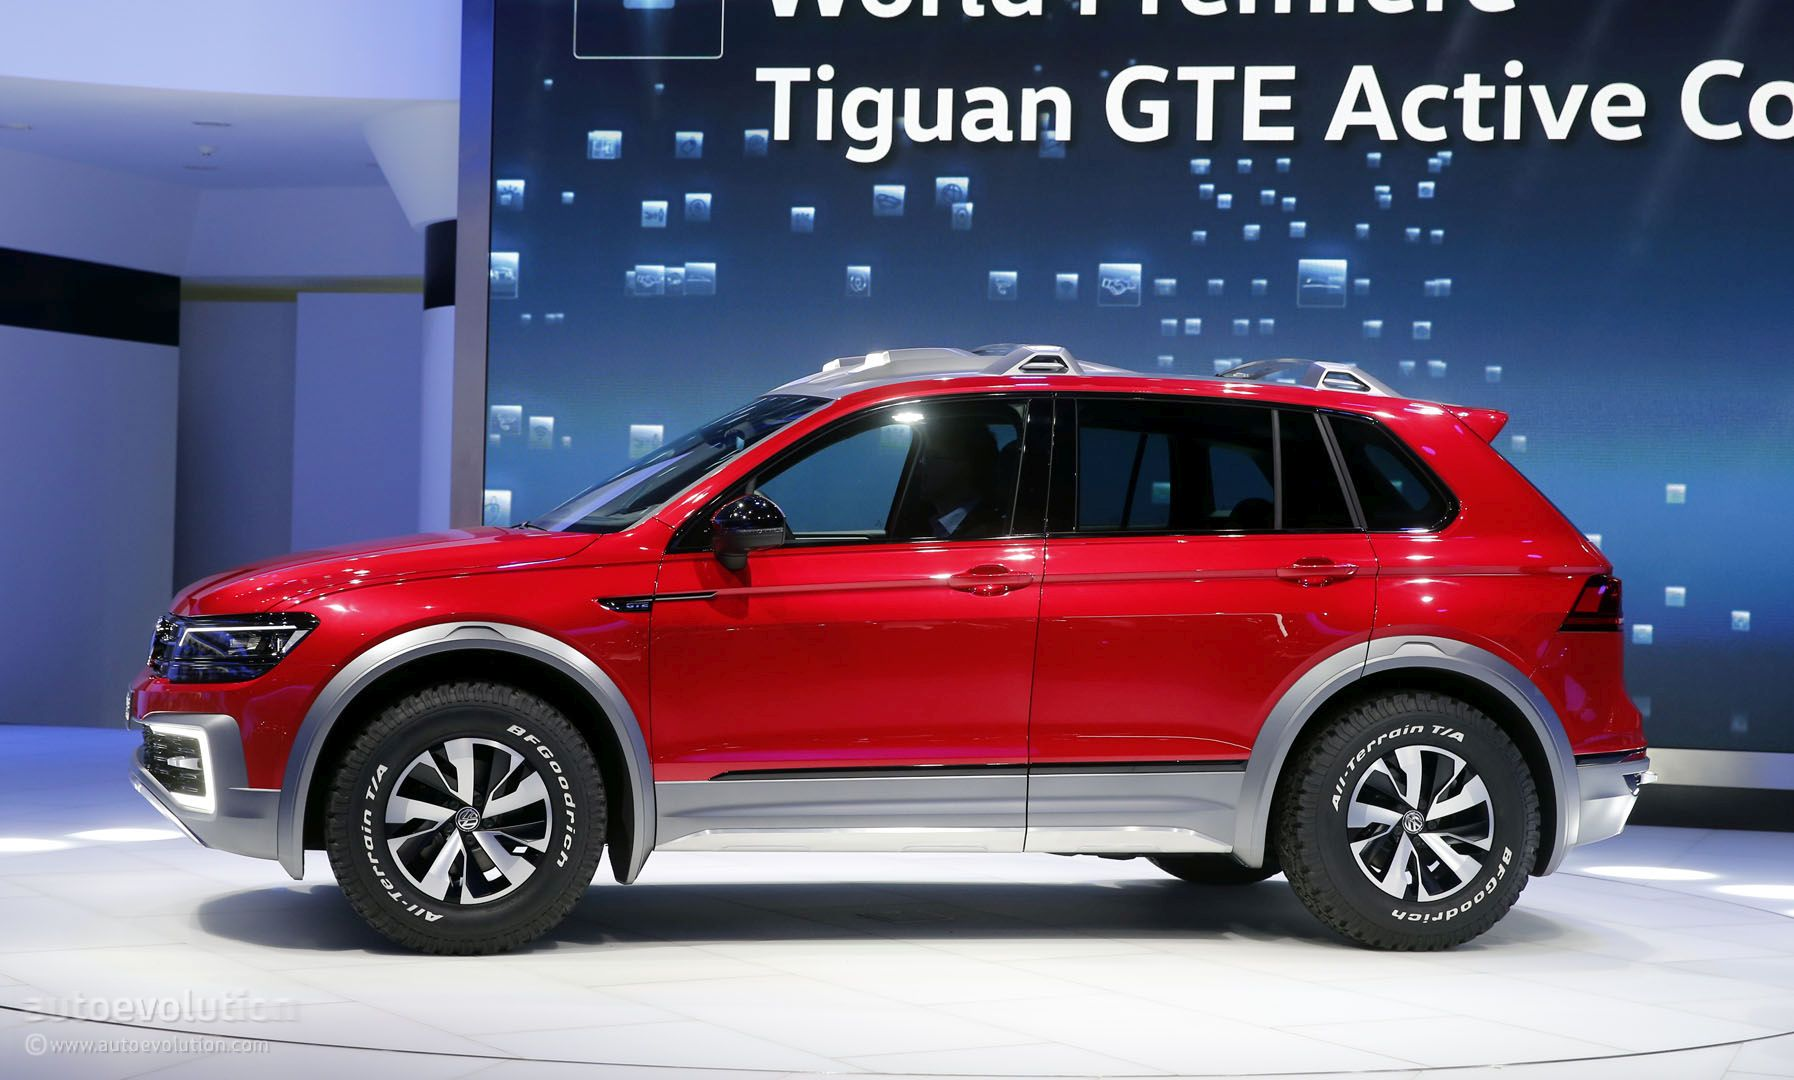 volkswagen tiguan gte active concept is a rwd based sporty hybrid in detroit autoevolution. Black Bedroom Furniture Sets. Home Design Ideas